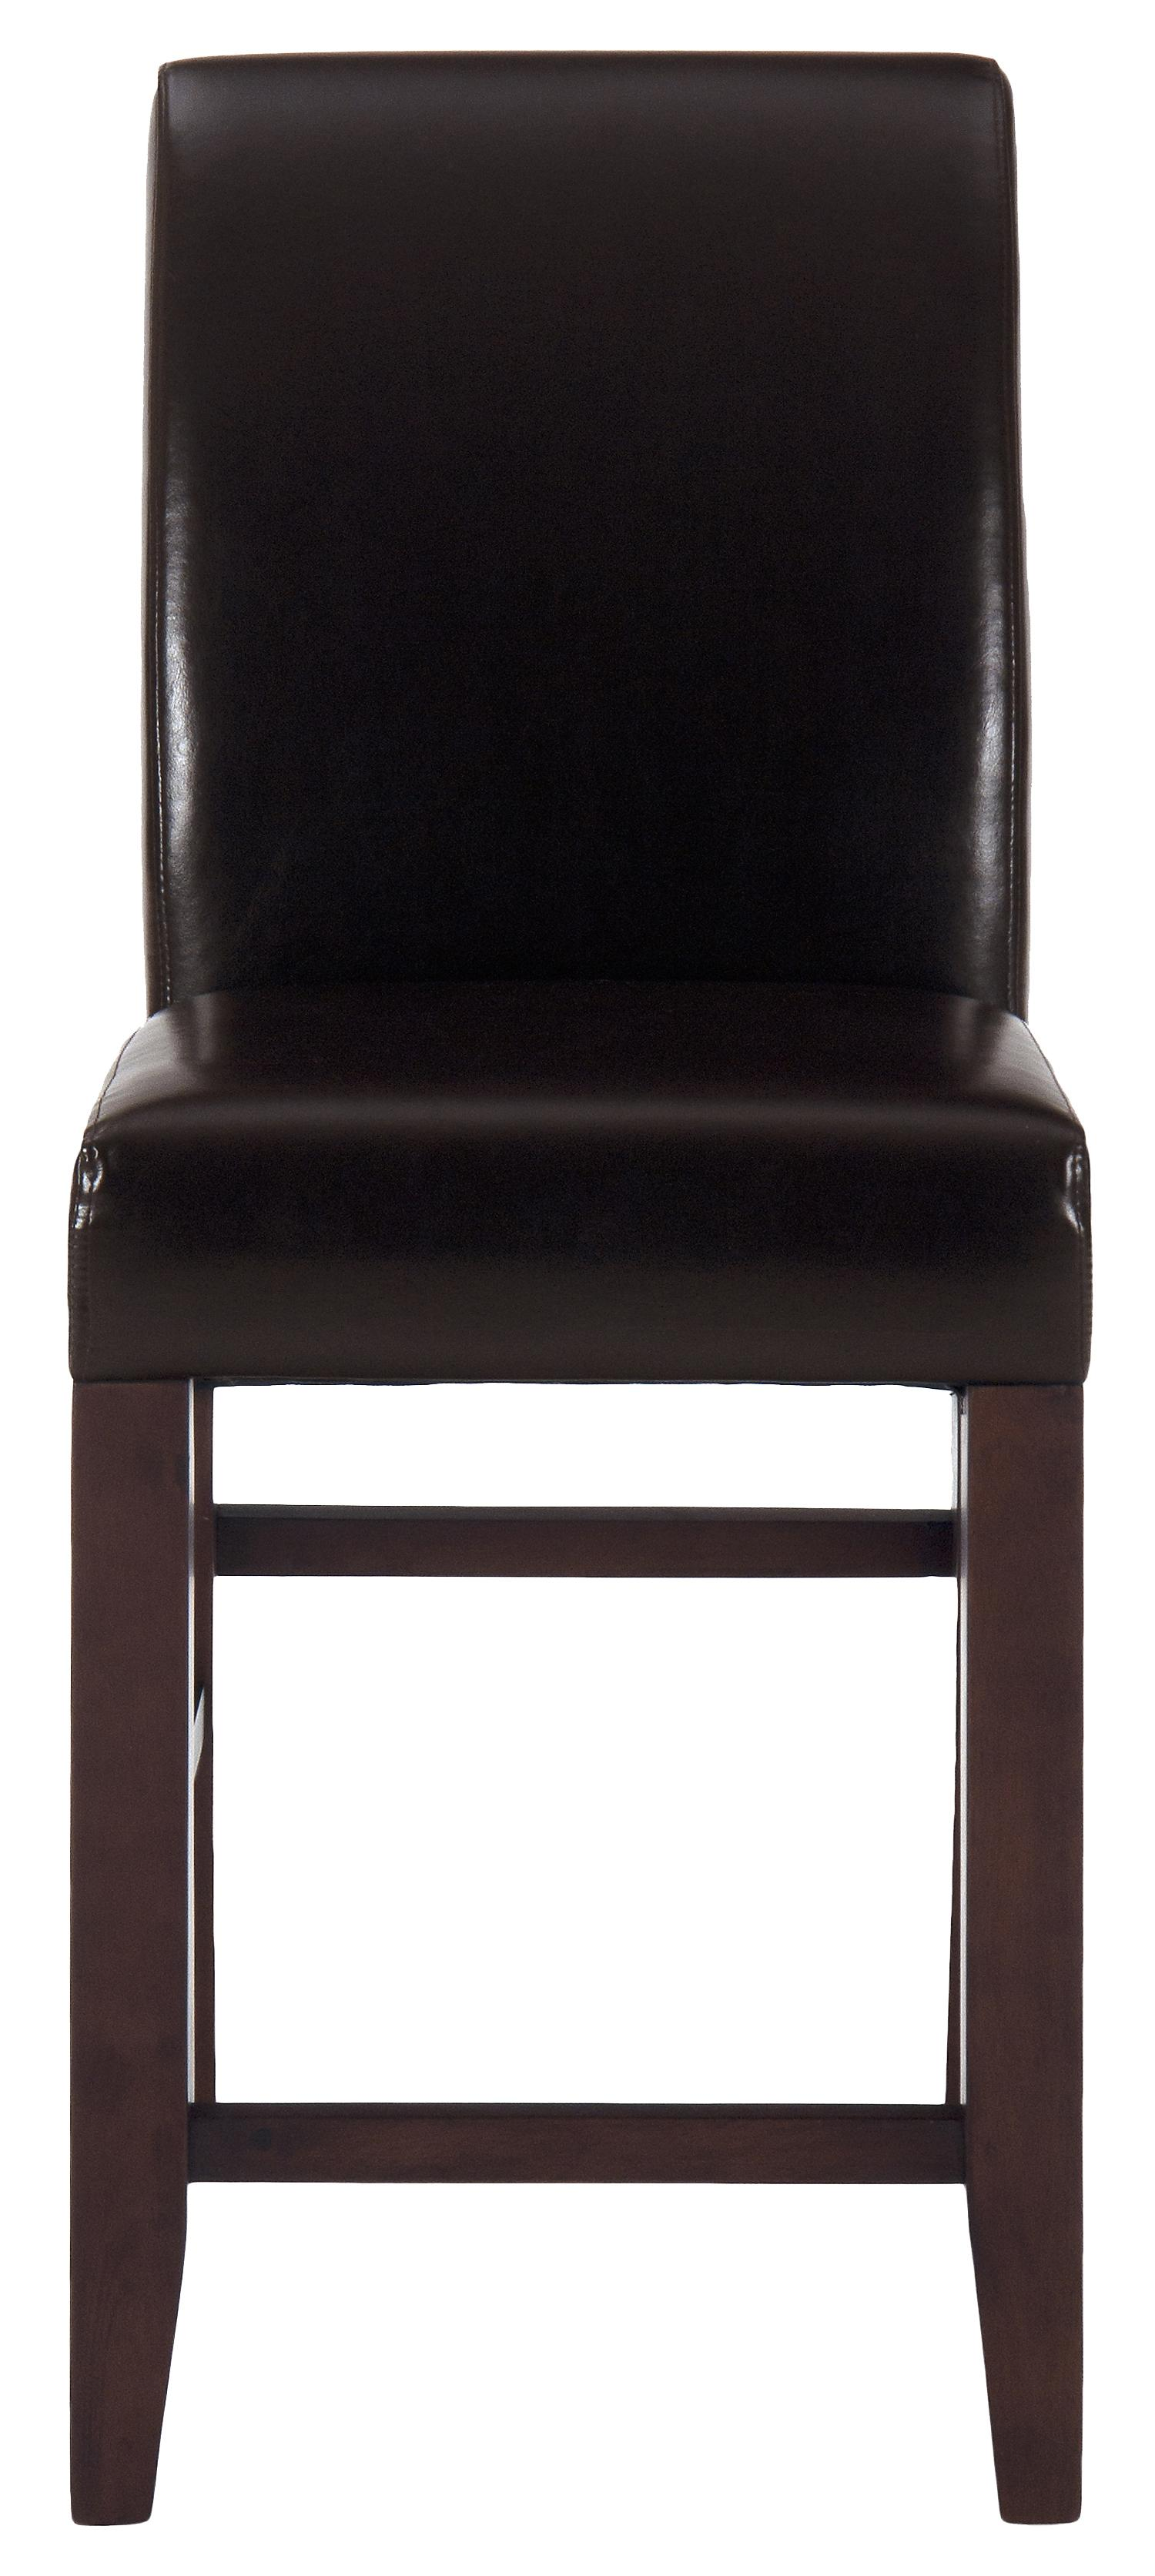 Jofran Carlsbad Cherry Bonded Leather Stool - Item Number: 888-BS485KD